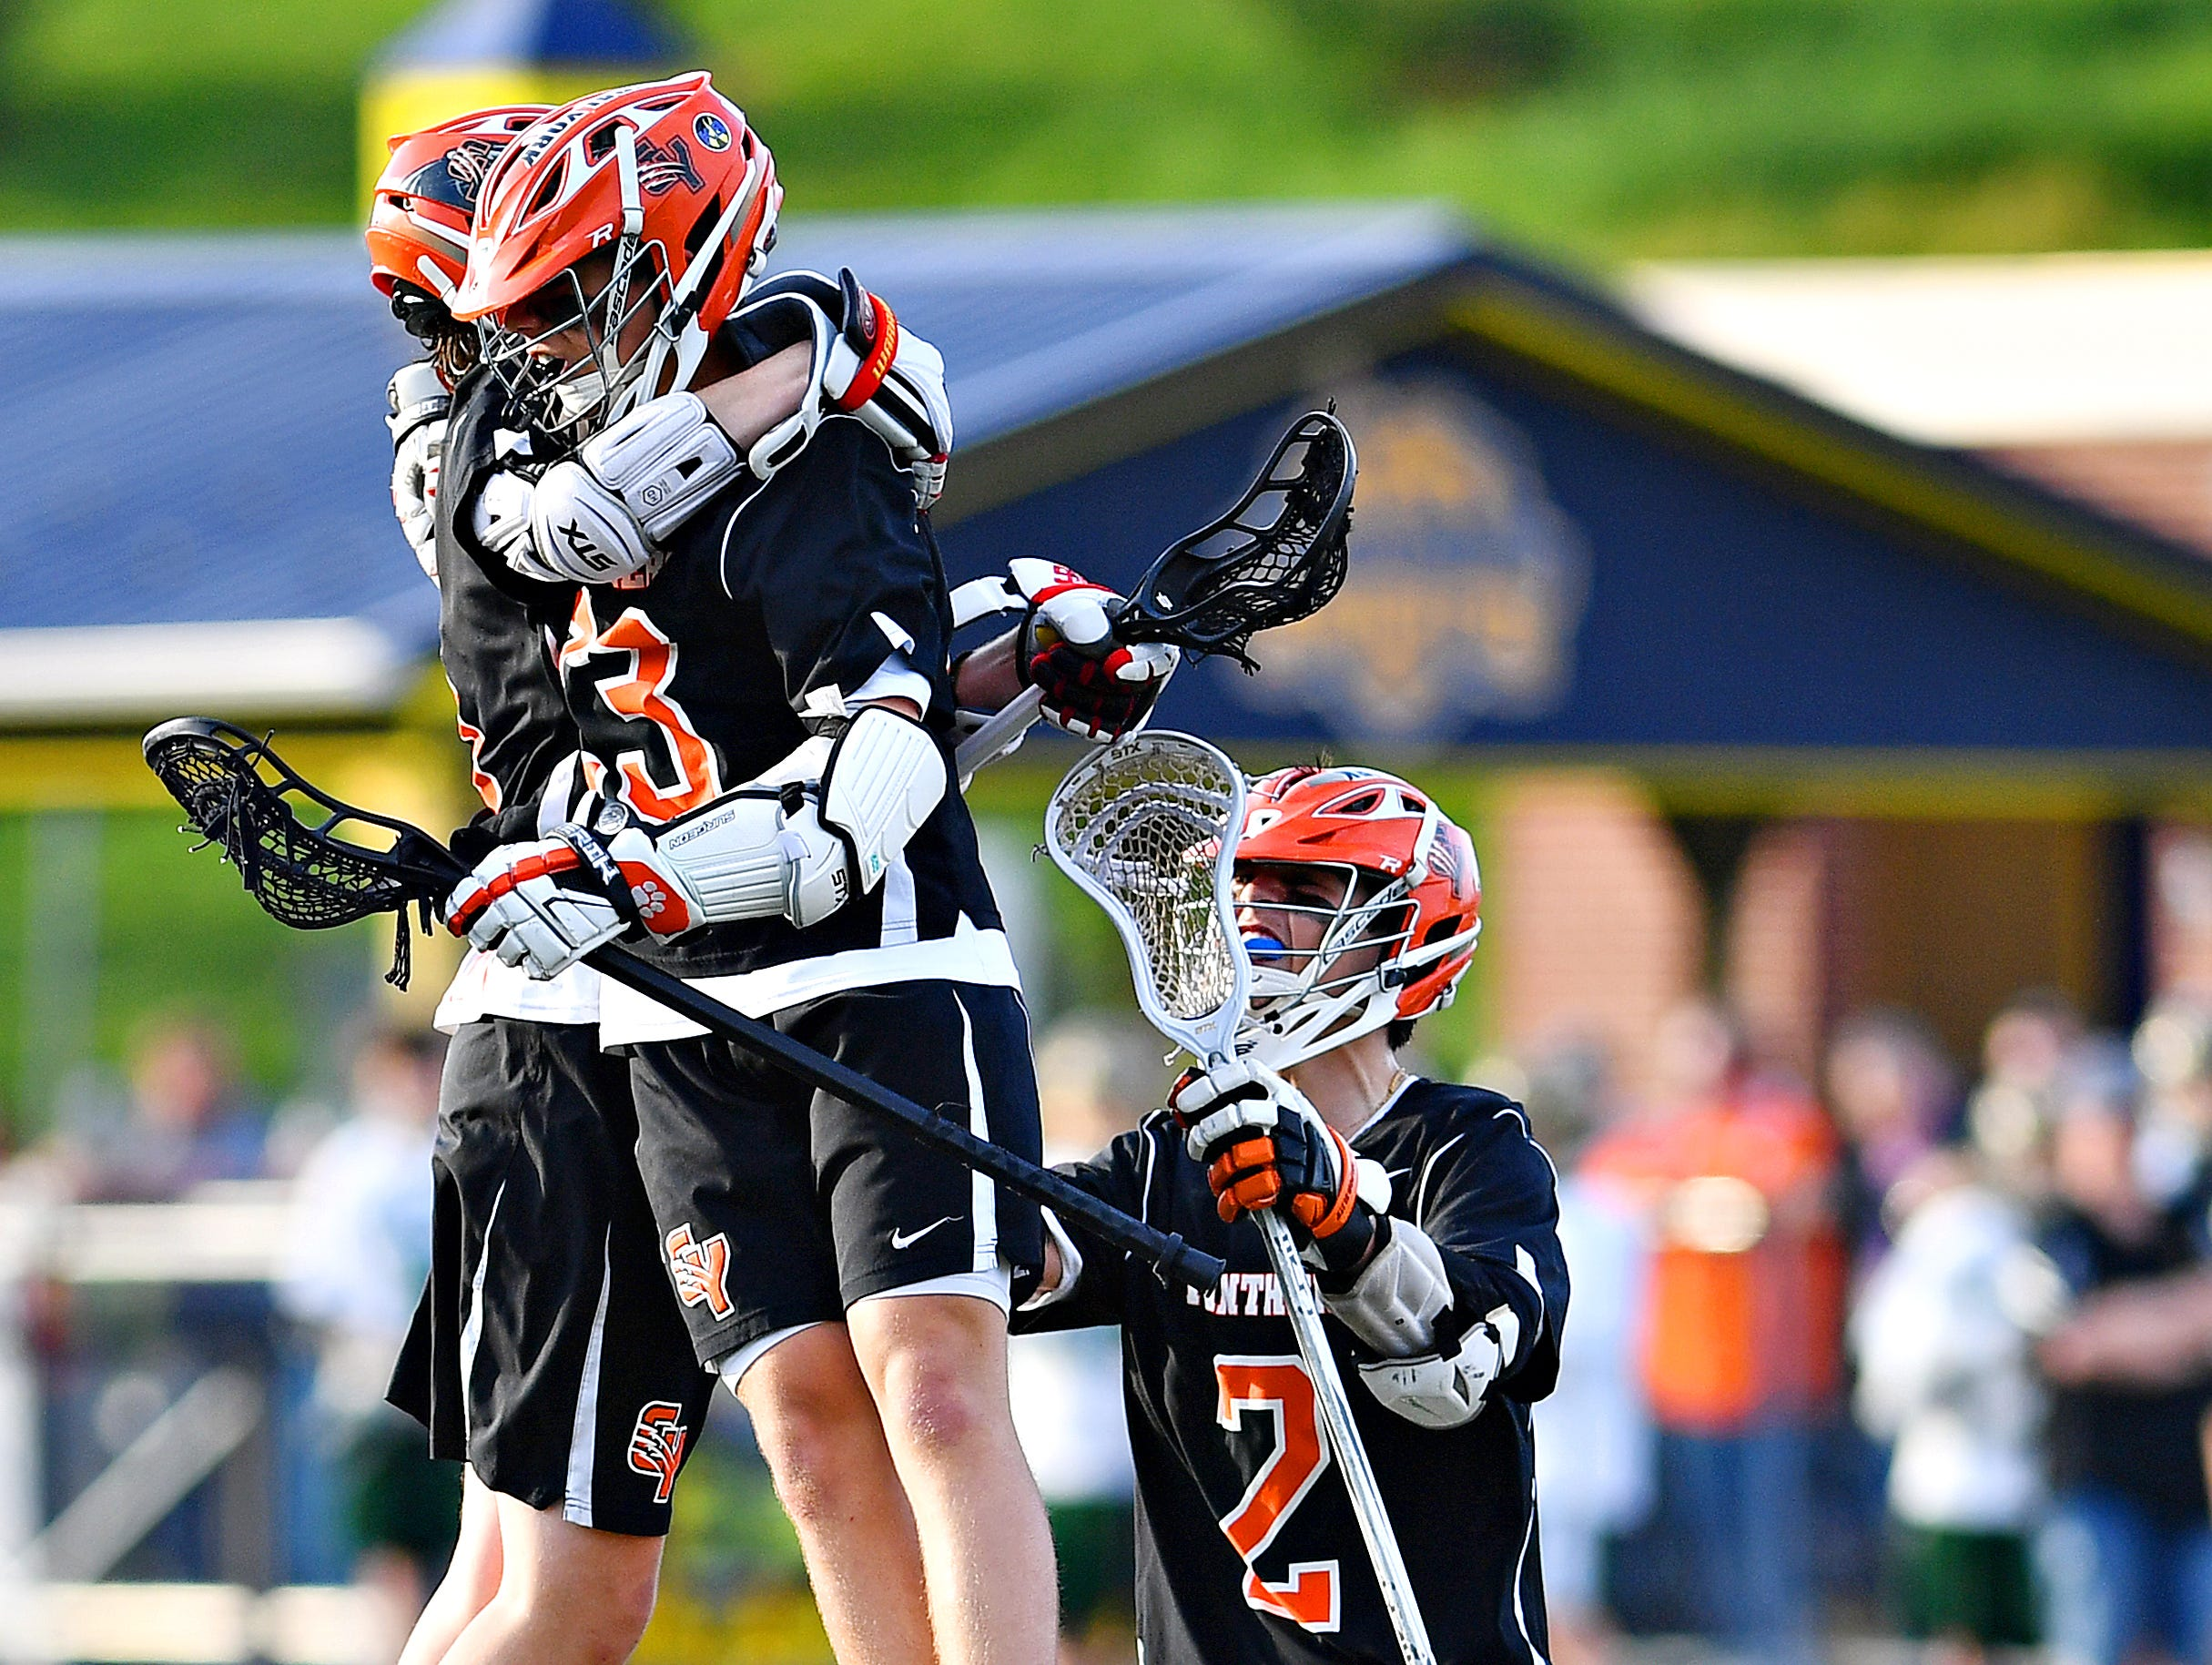 Central York vs York Catholic during lacrosse championship action at Eastern York Senior High School in Wrightsville, Friday, May 10, 2019. Central York would win the title game 13-5. Dawn J. Sagert photo